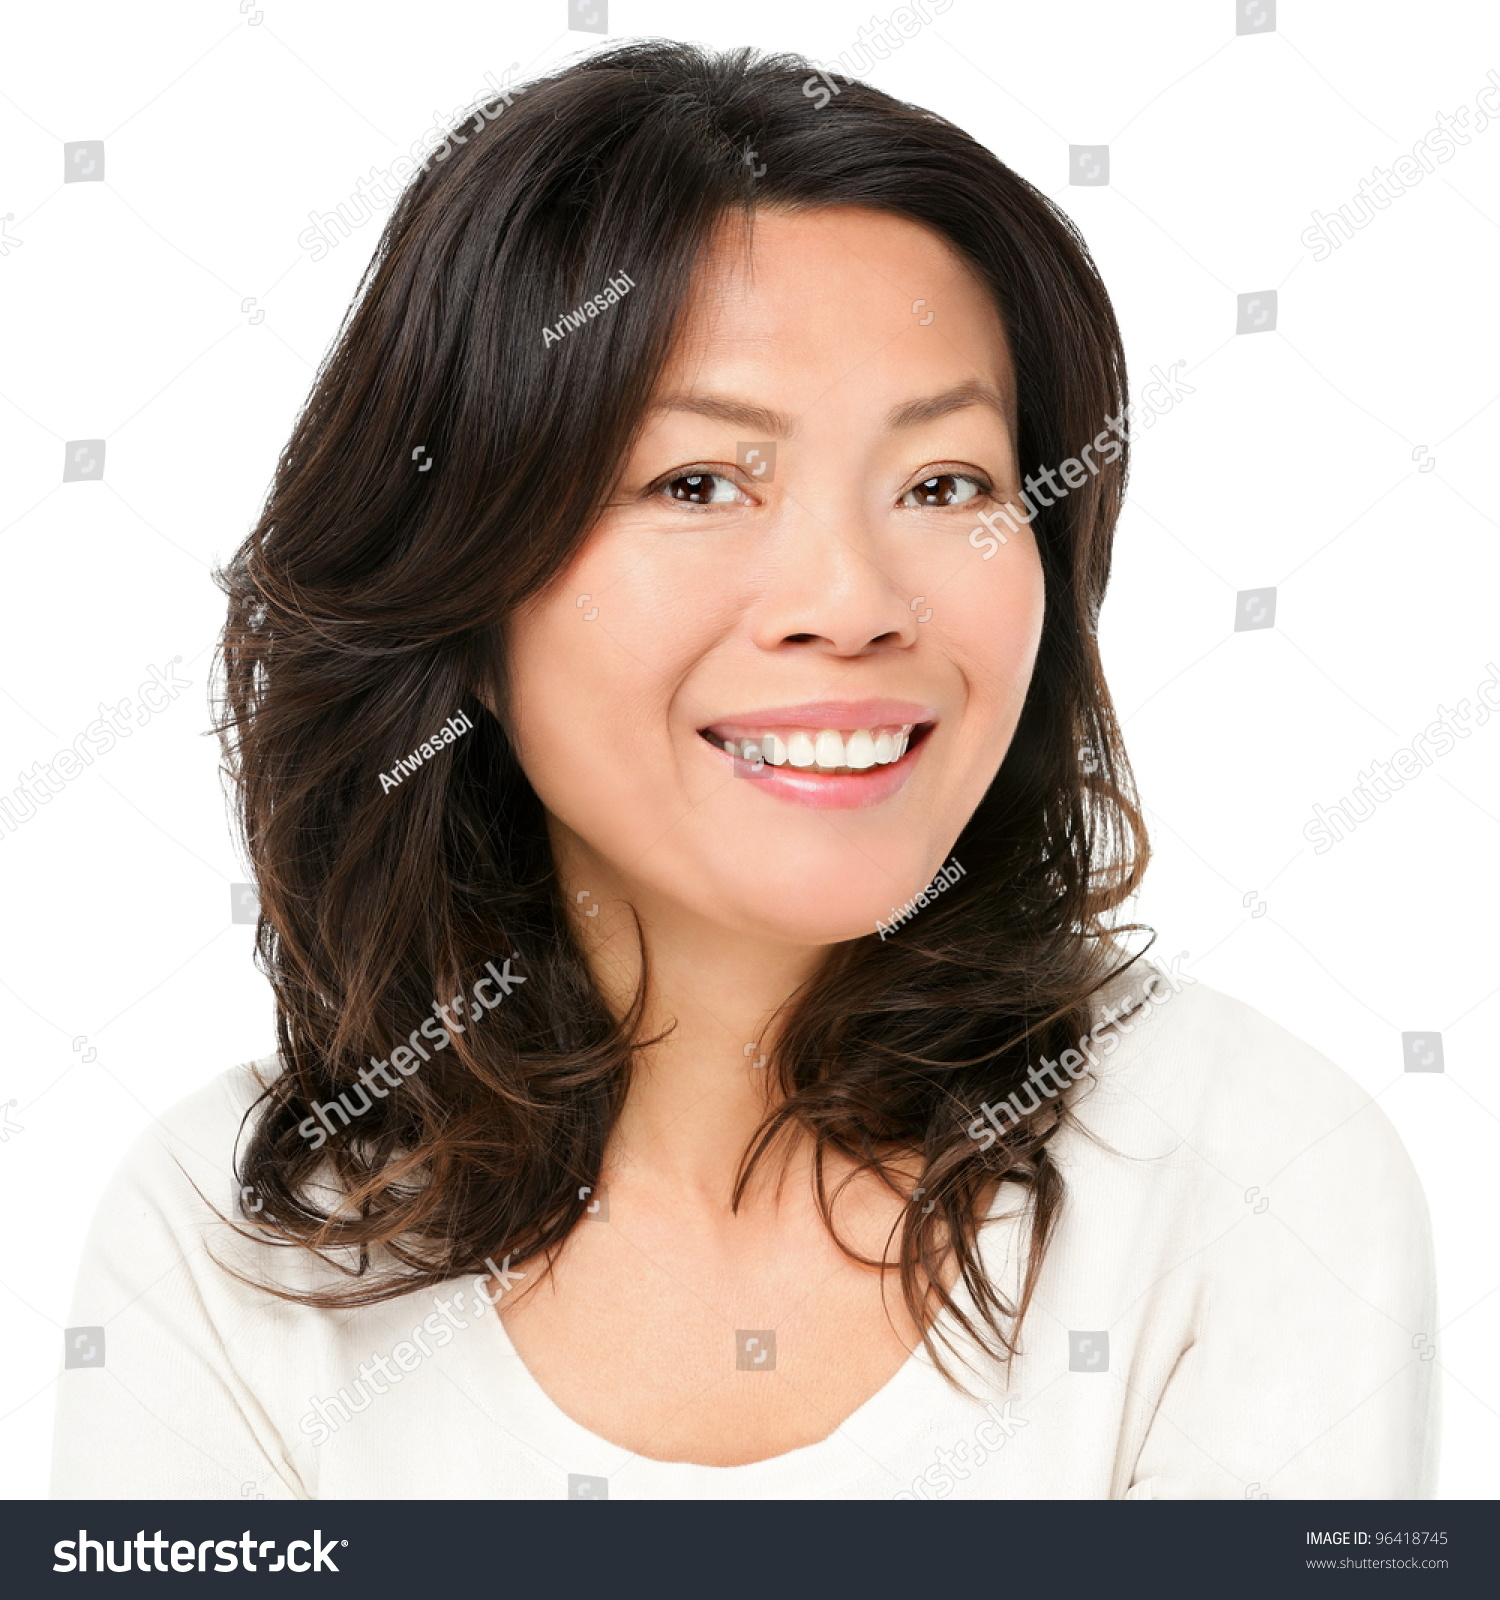 Asian Woman Smiling Happy Portrait Beautiful Stock Photo -9026